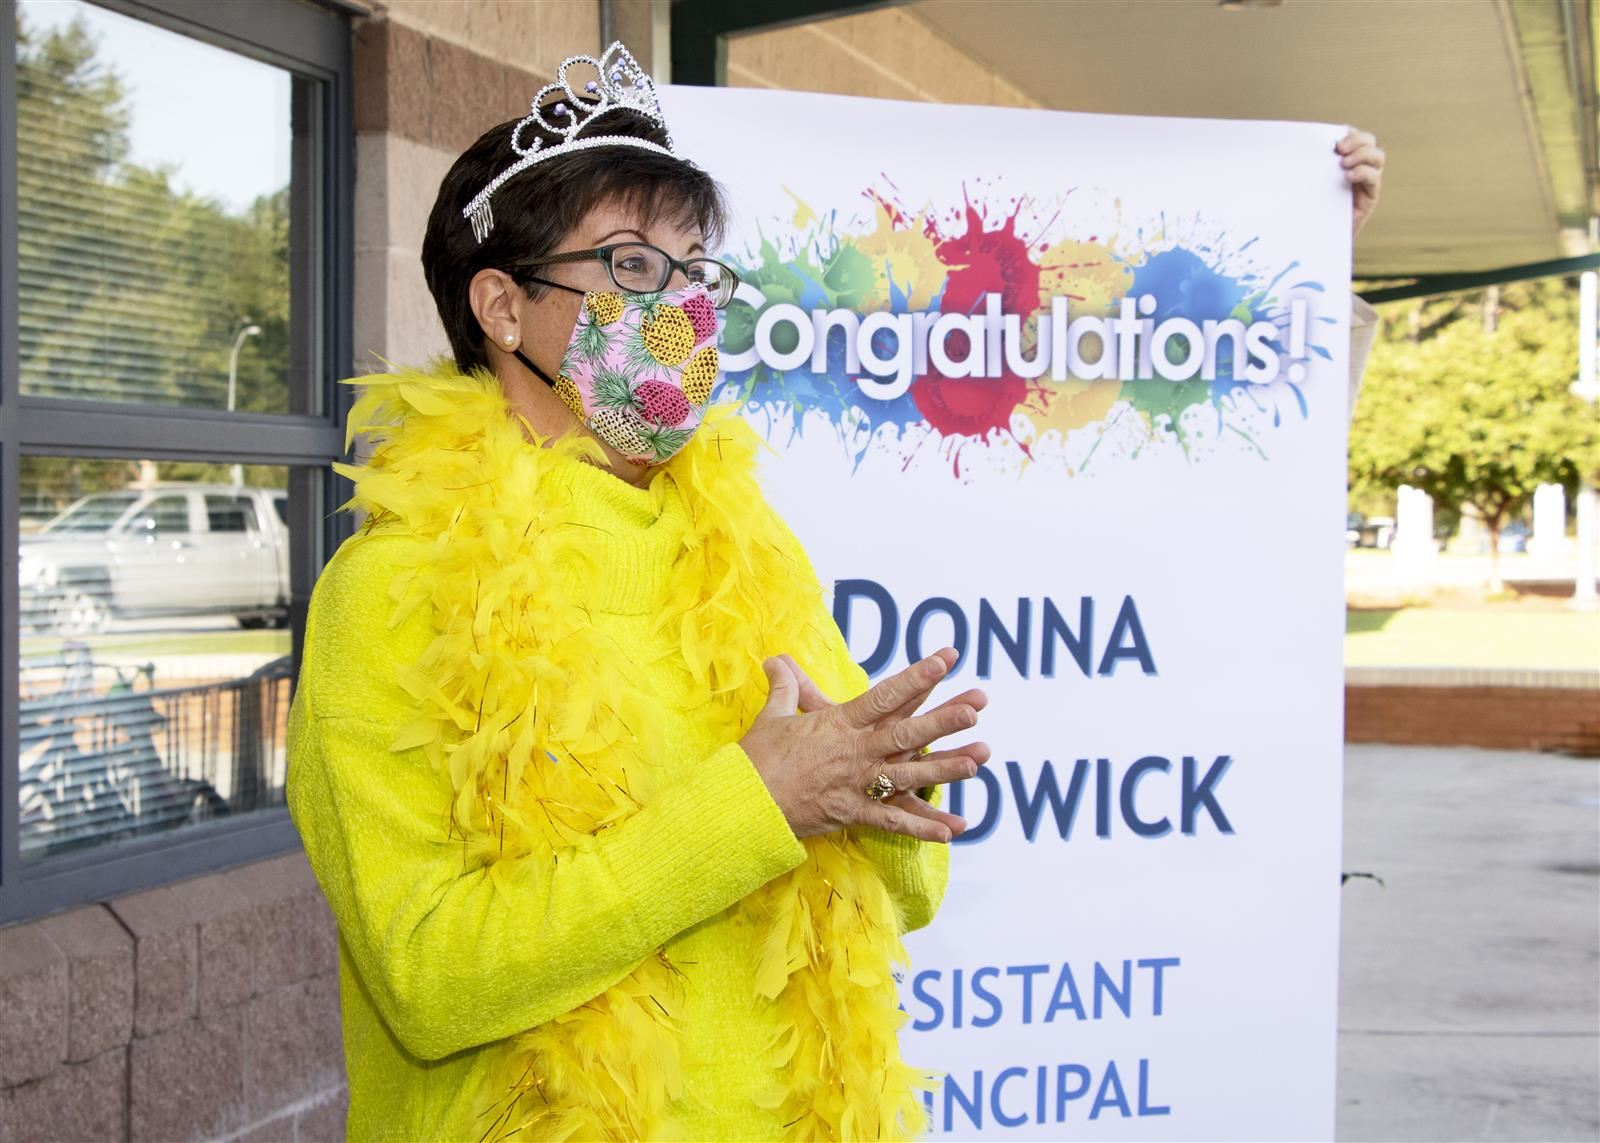 Donna Chadwick was named OCS APOY on September 22